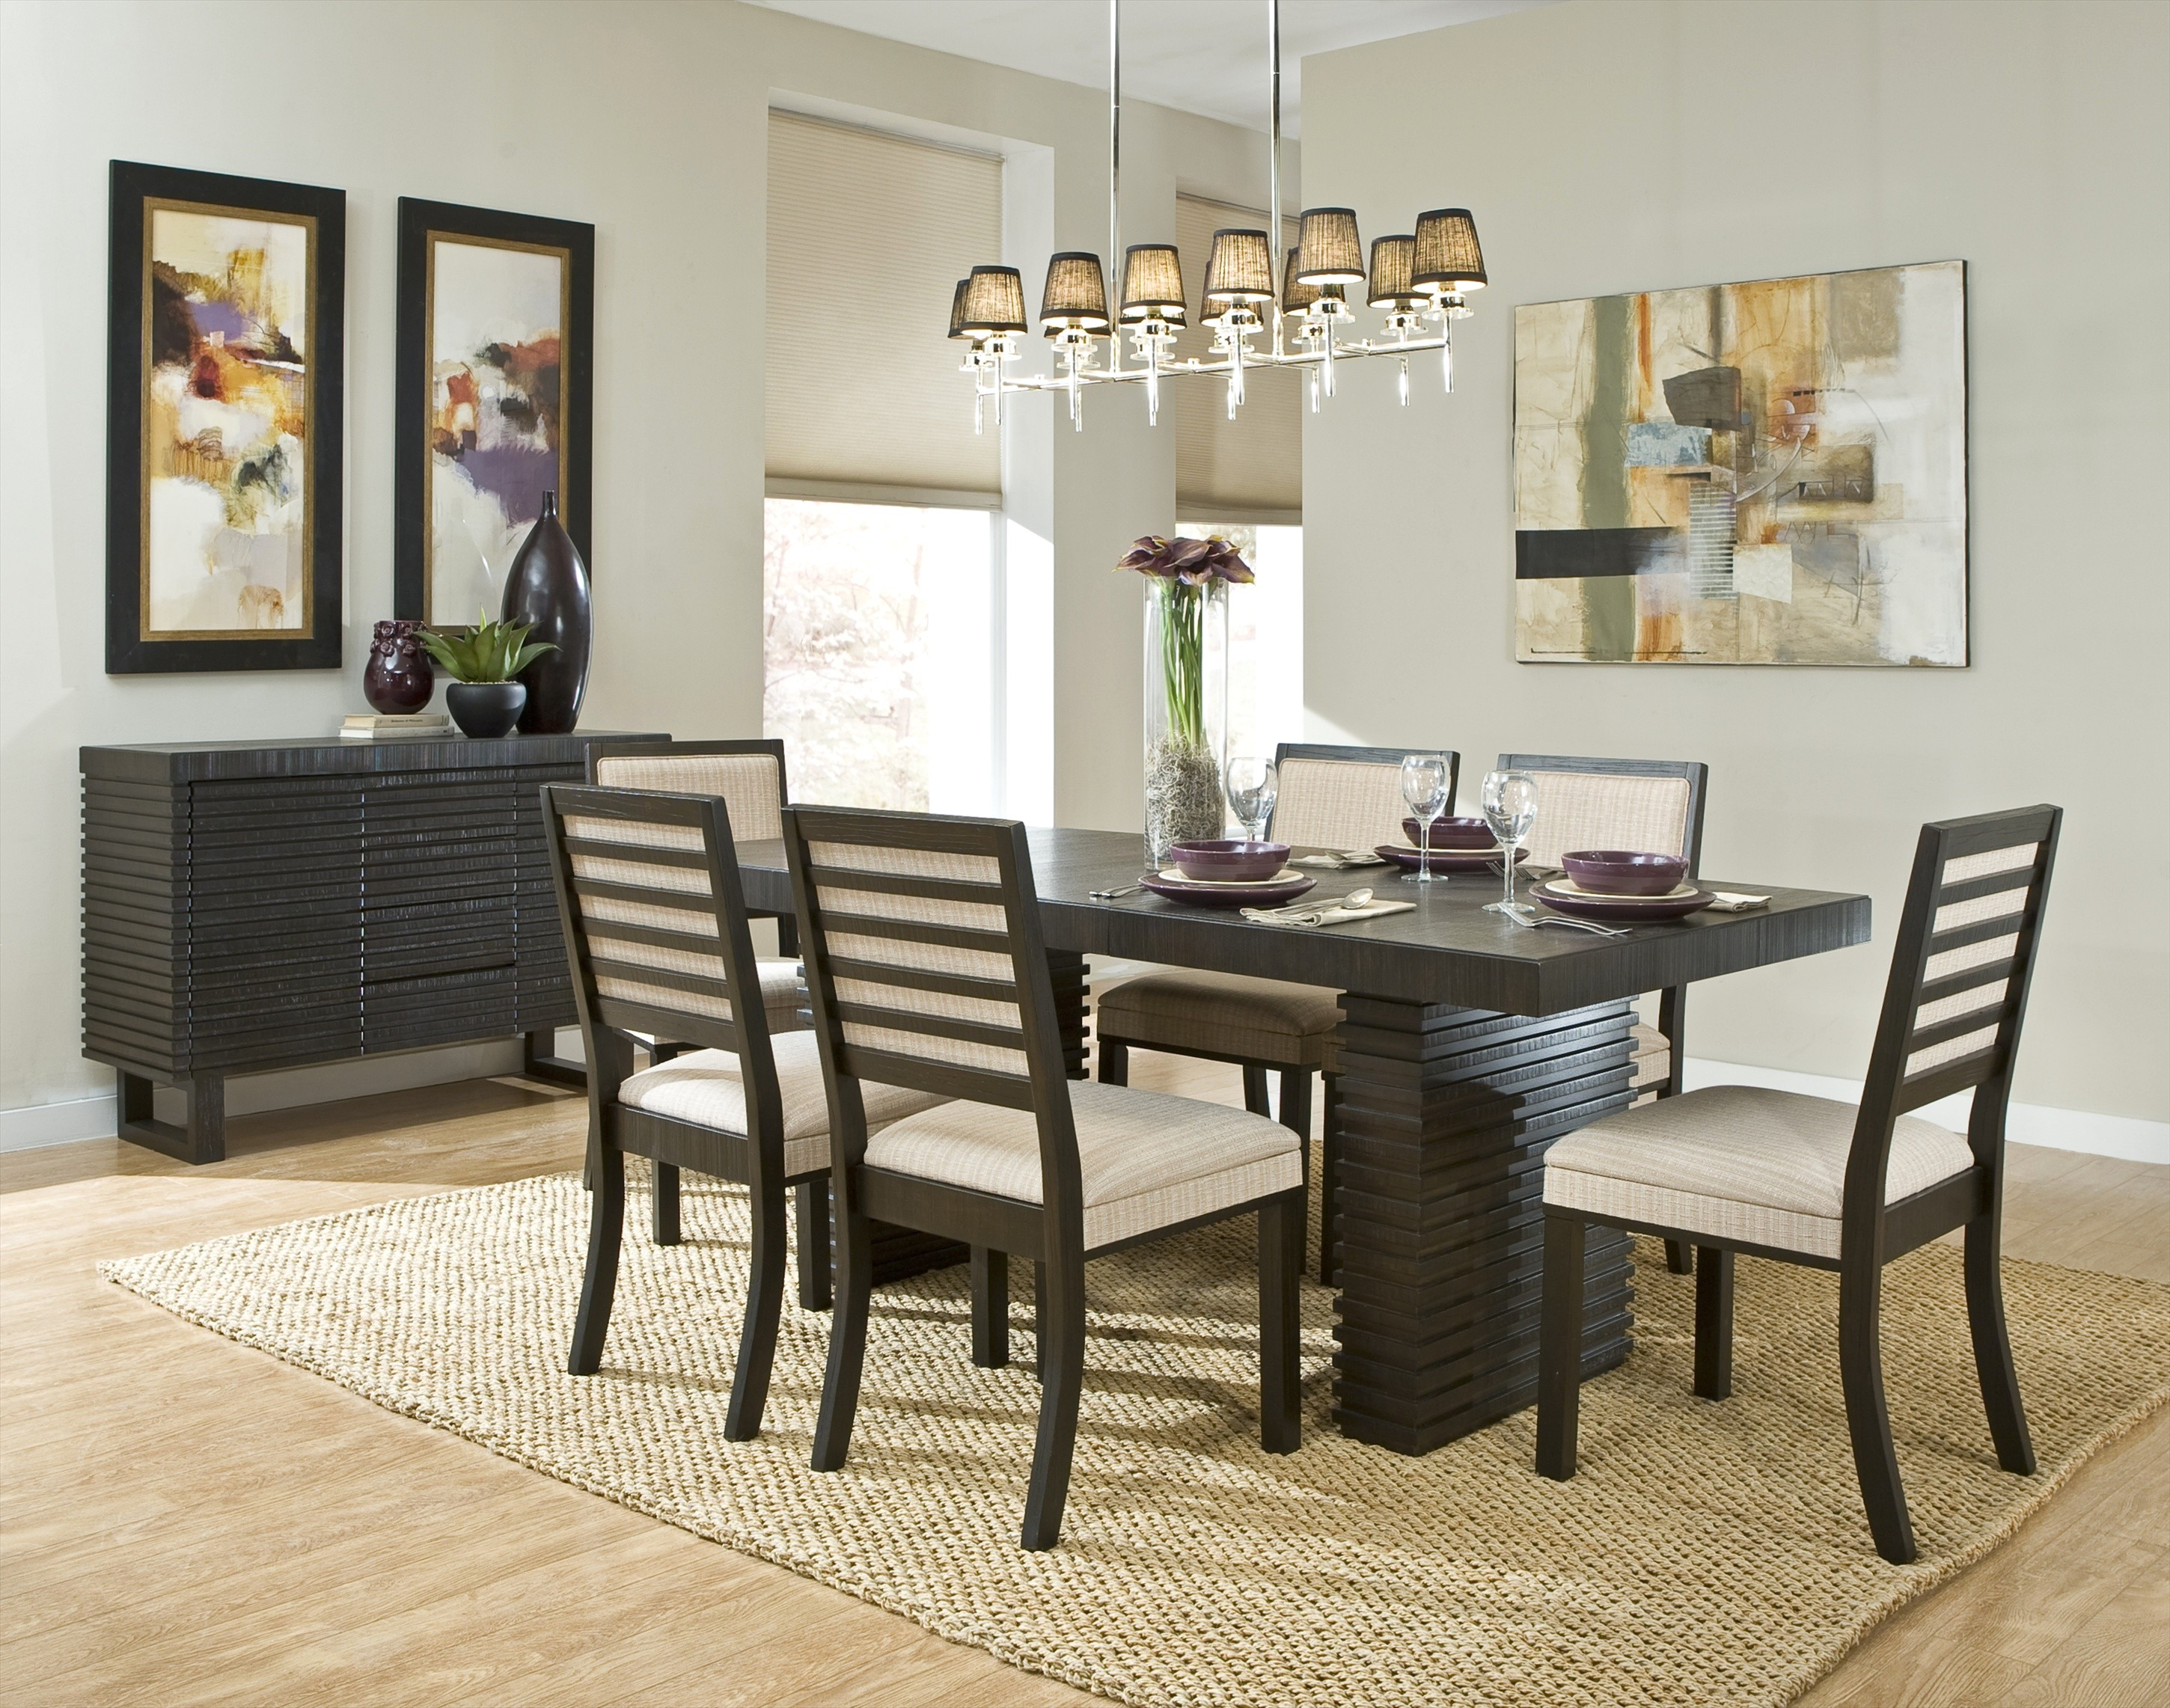 decor for dining room photo - 1